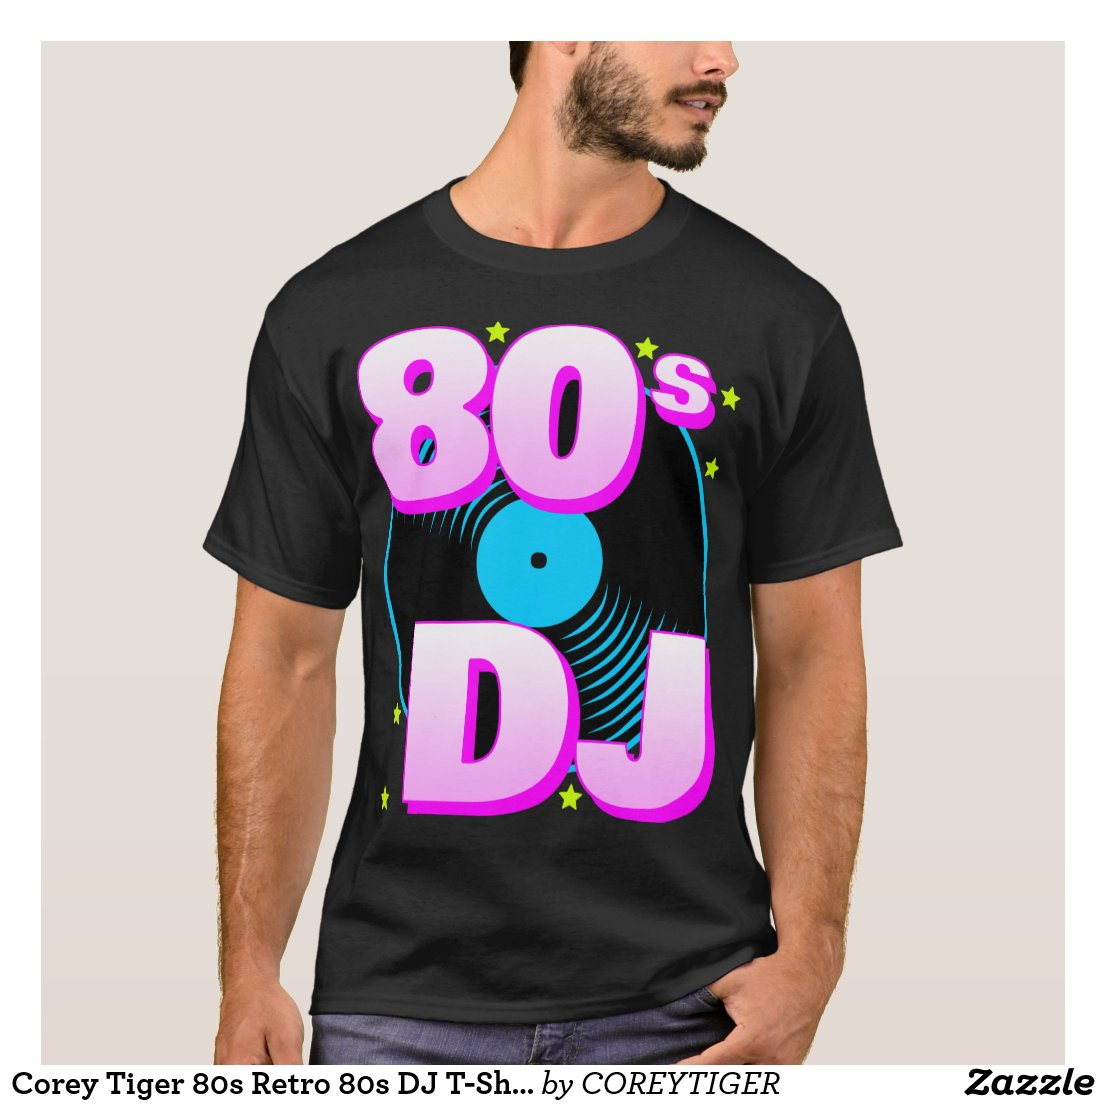 Corey Tiger 80s Retro 80s DJ T-Shirt